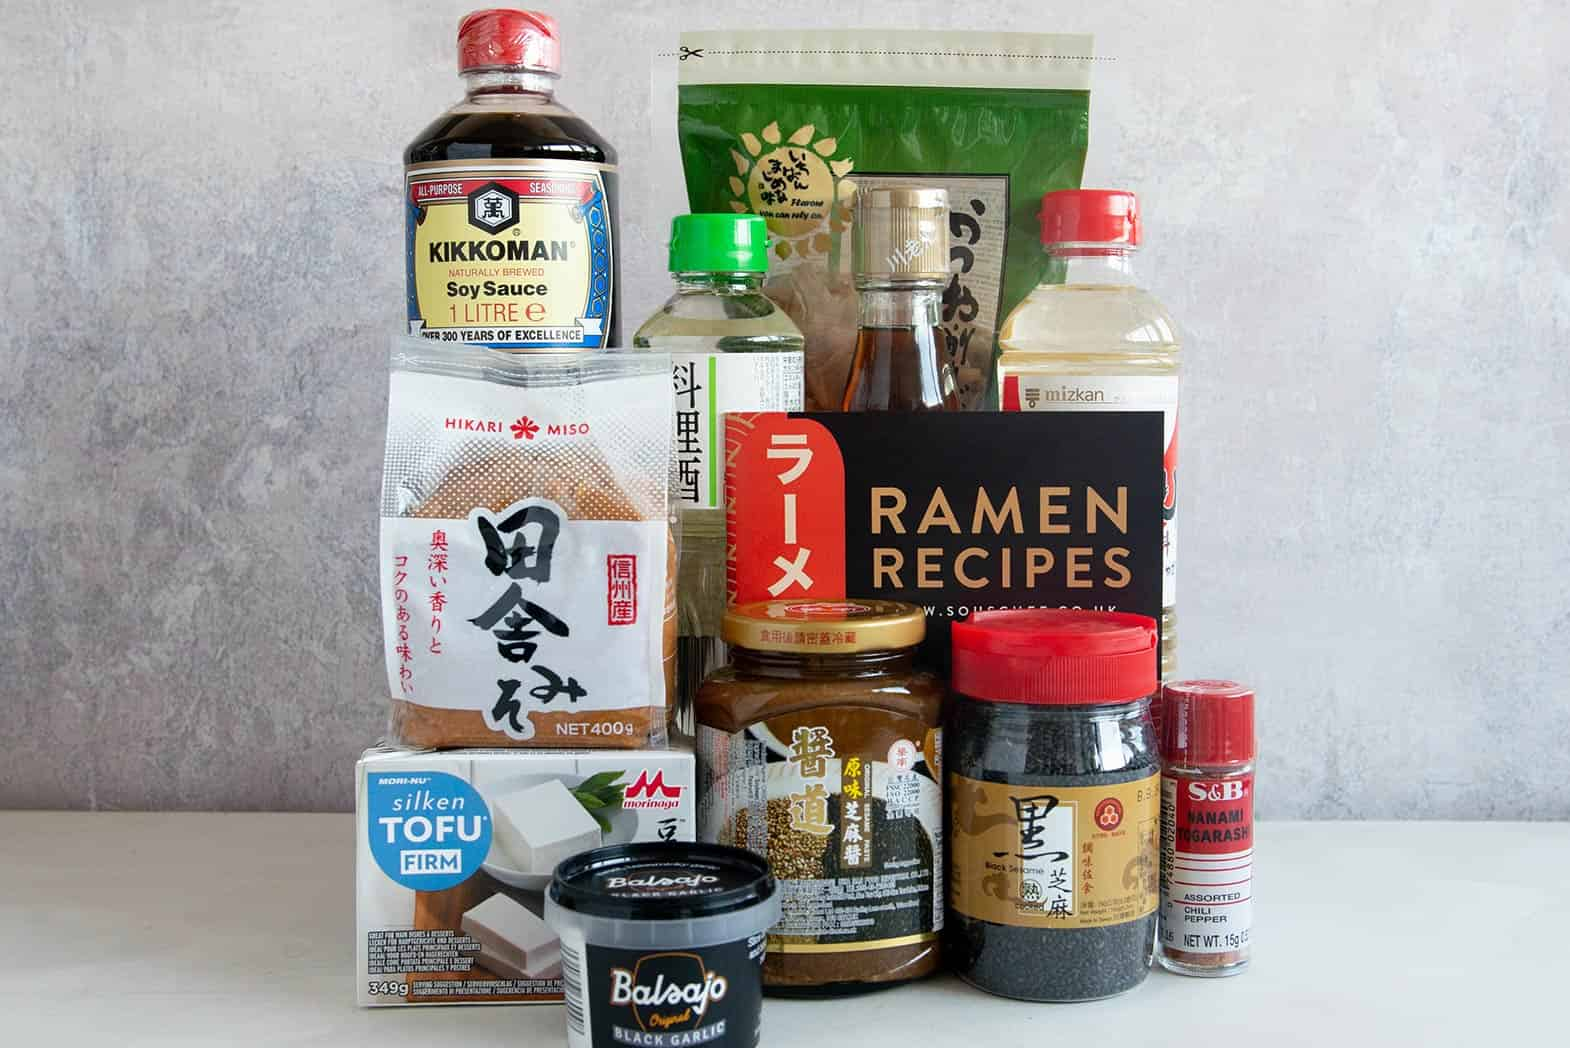 The Ultimate Japanese Ingredients For Your Kitchen, by Reiko Hashimoto